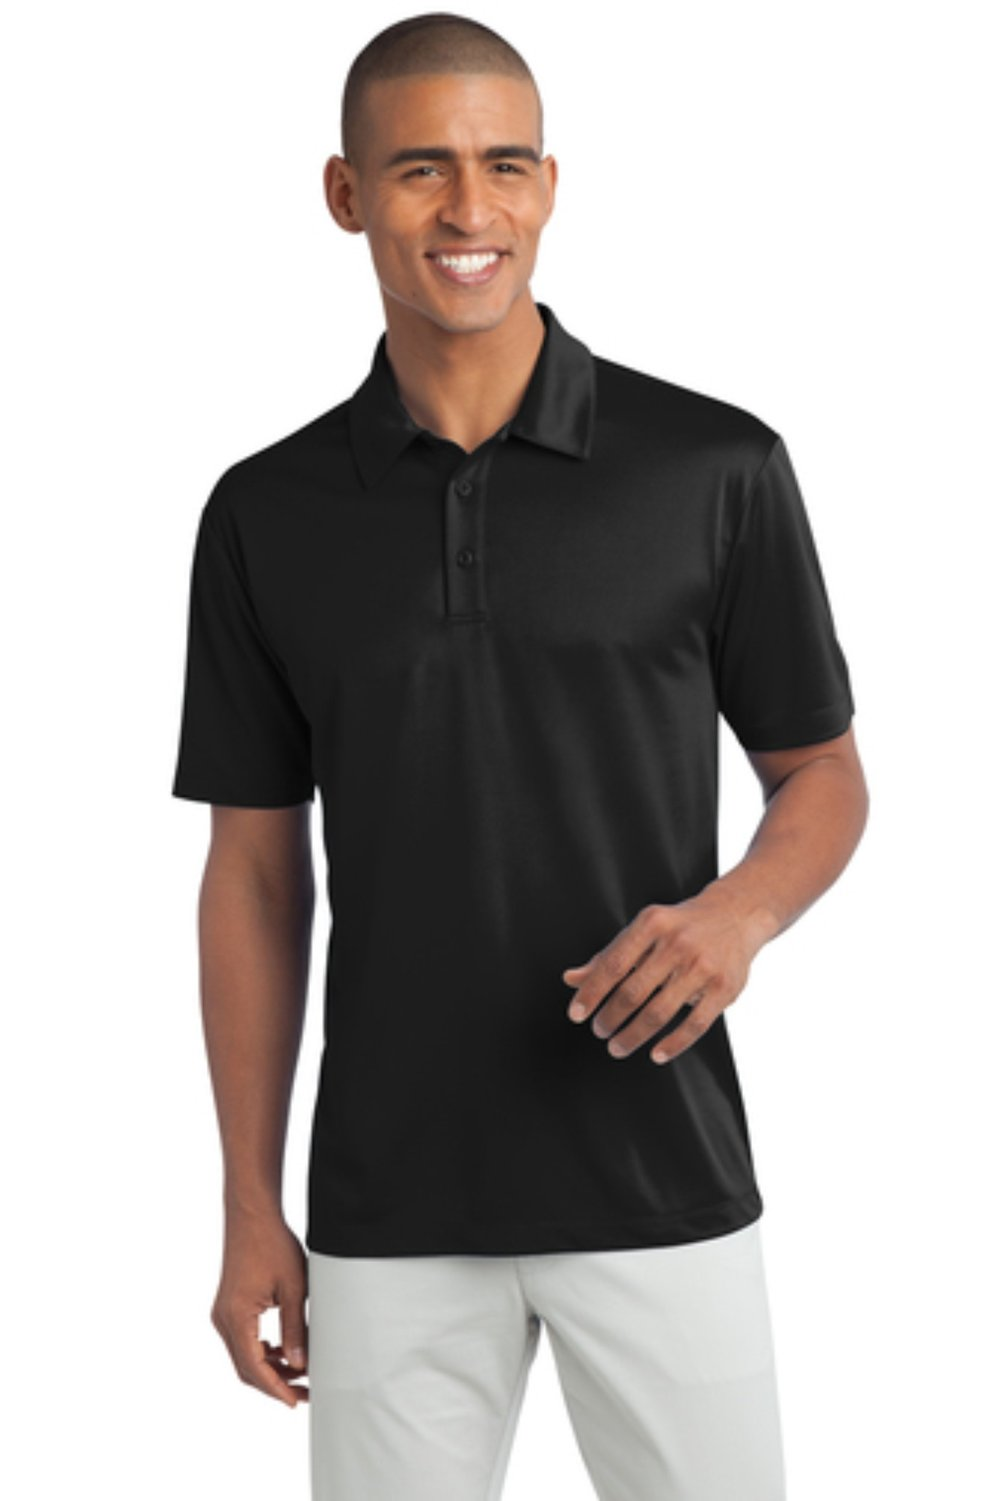 K540 Men's Port Authority Performance Polo.      $18.00